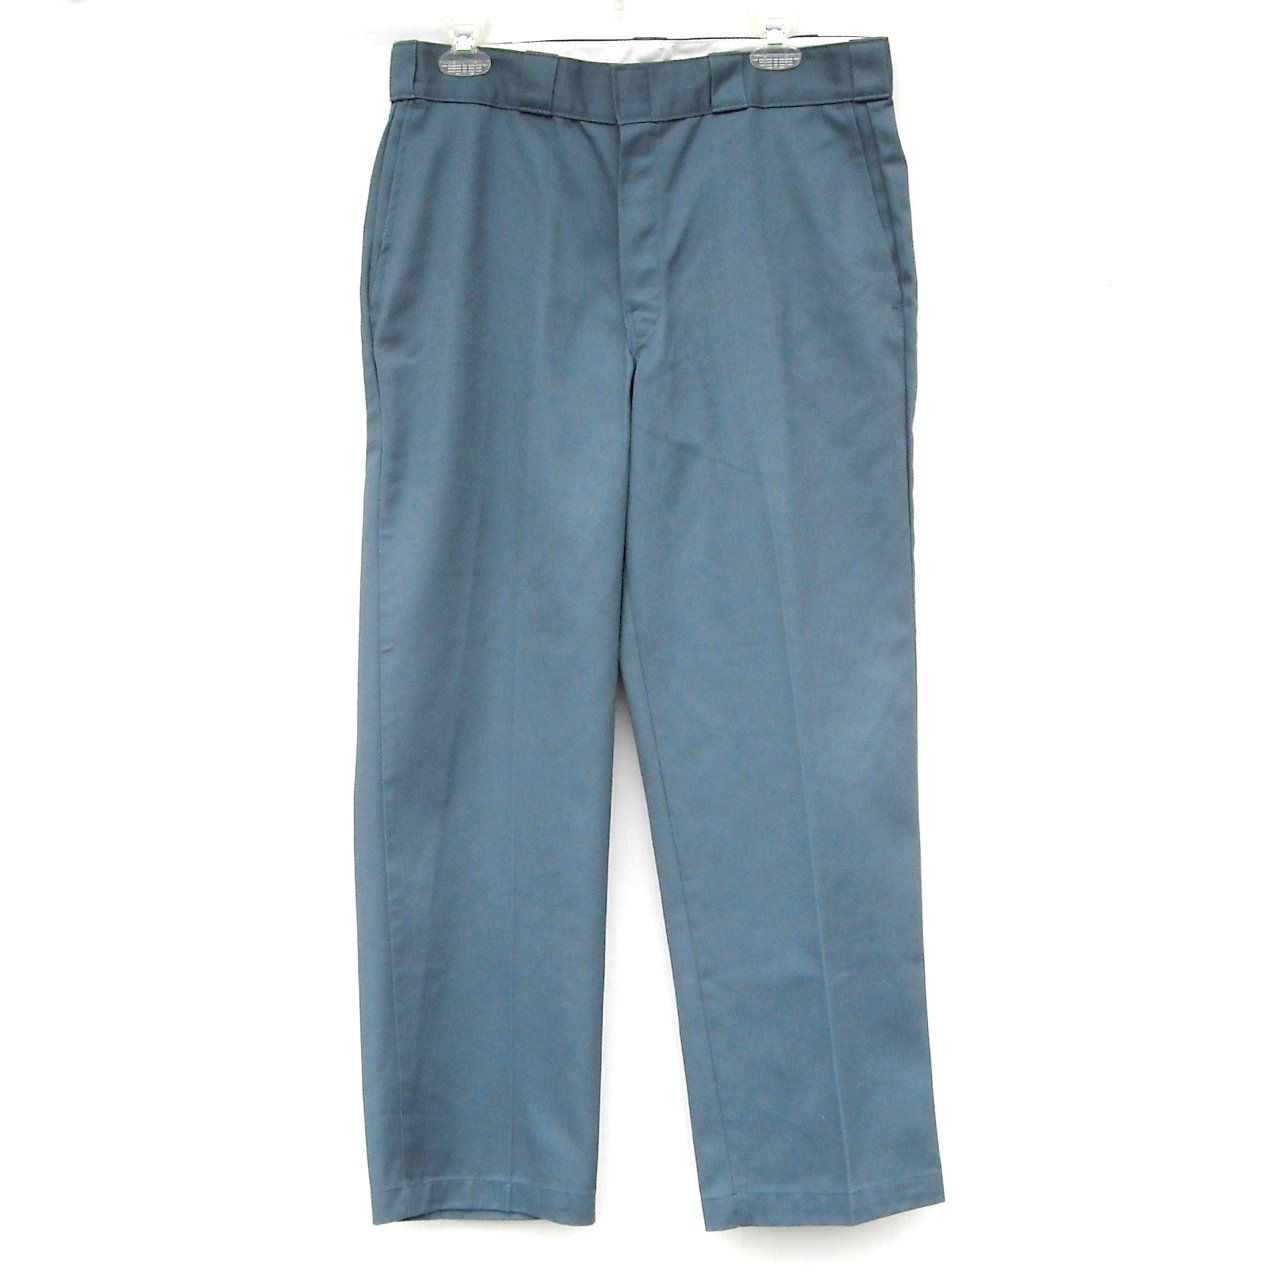 Dickies Genuine Blue Work Pants 34 X 28